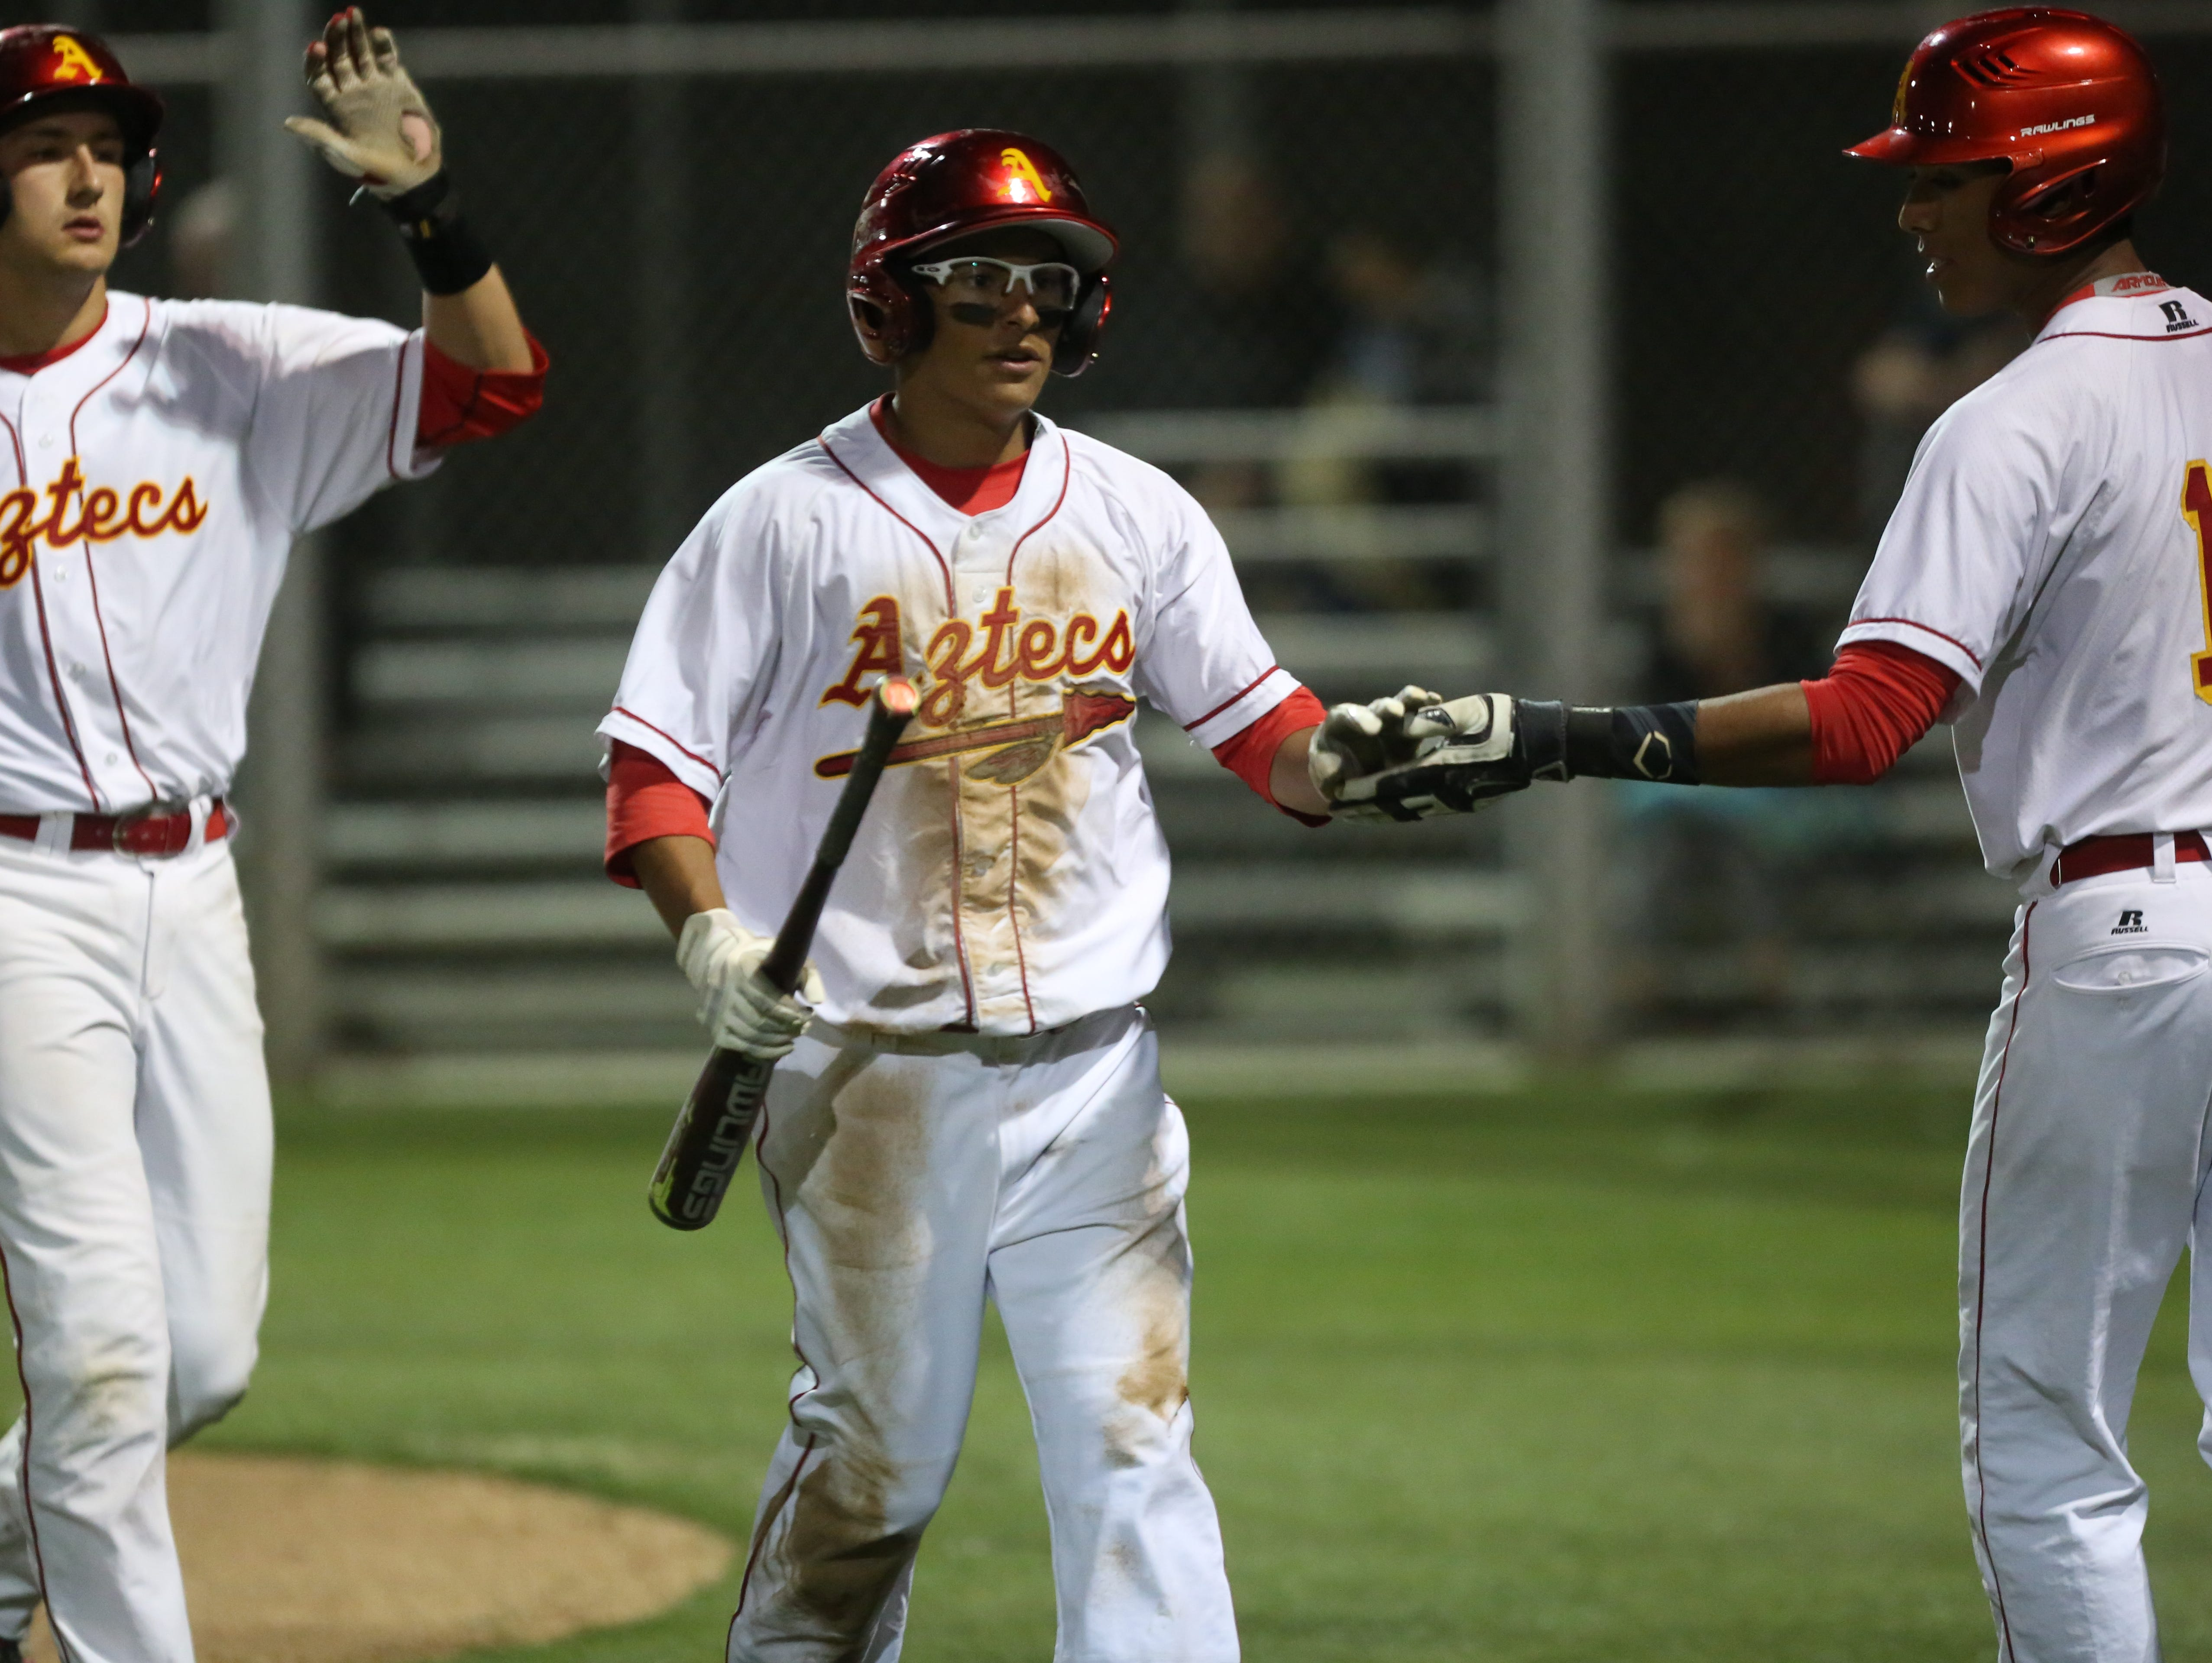 At far right, Palm Desert High School's Jeremiah Estrada congratulates Josh Hernandez after a scored run during their game against Foothill High School in Palm Desert on March 3, 2017.